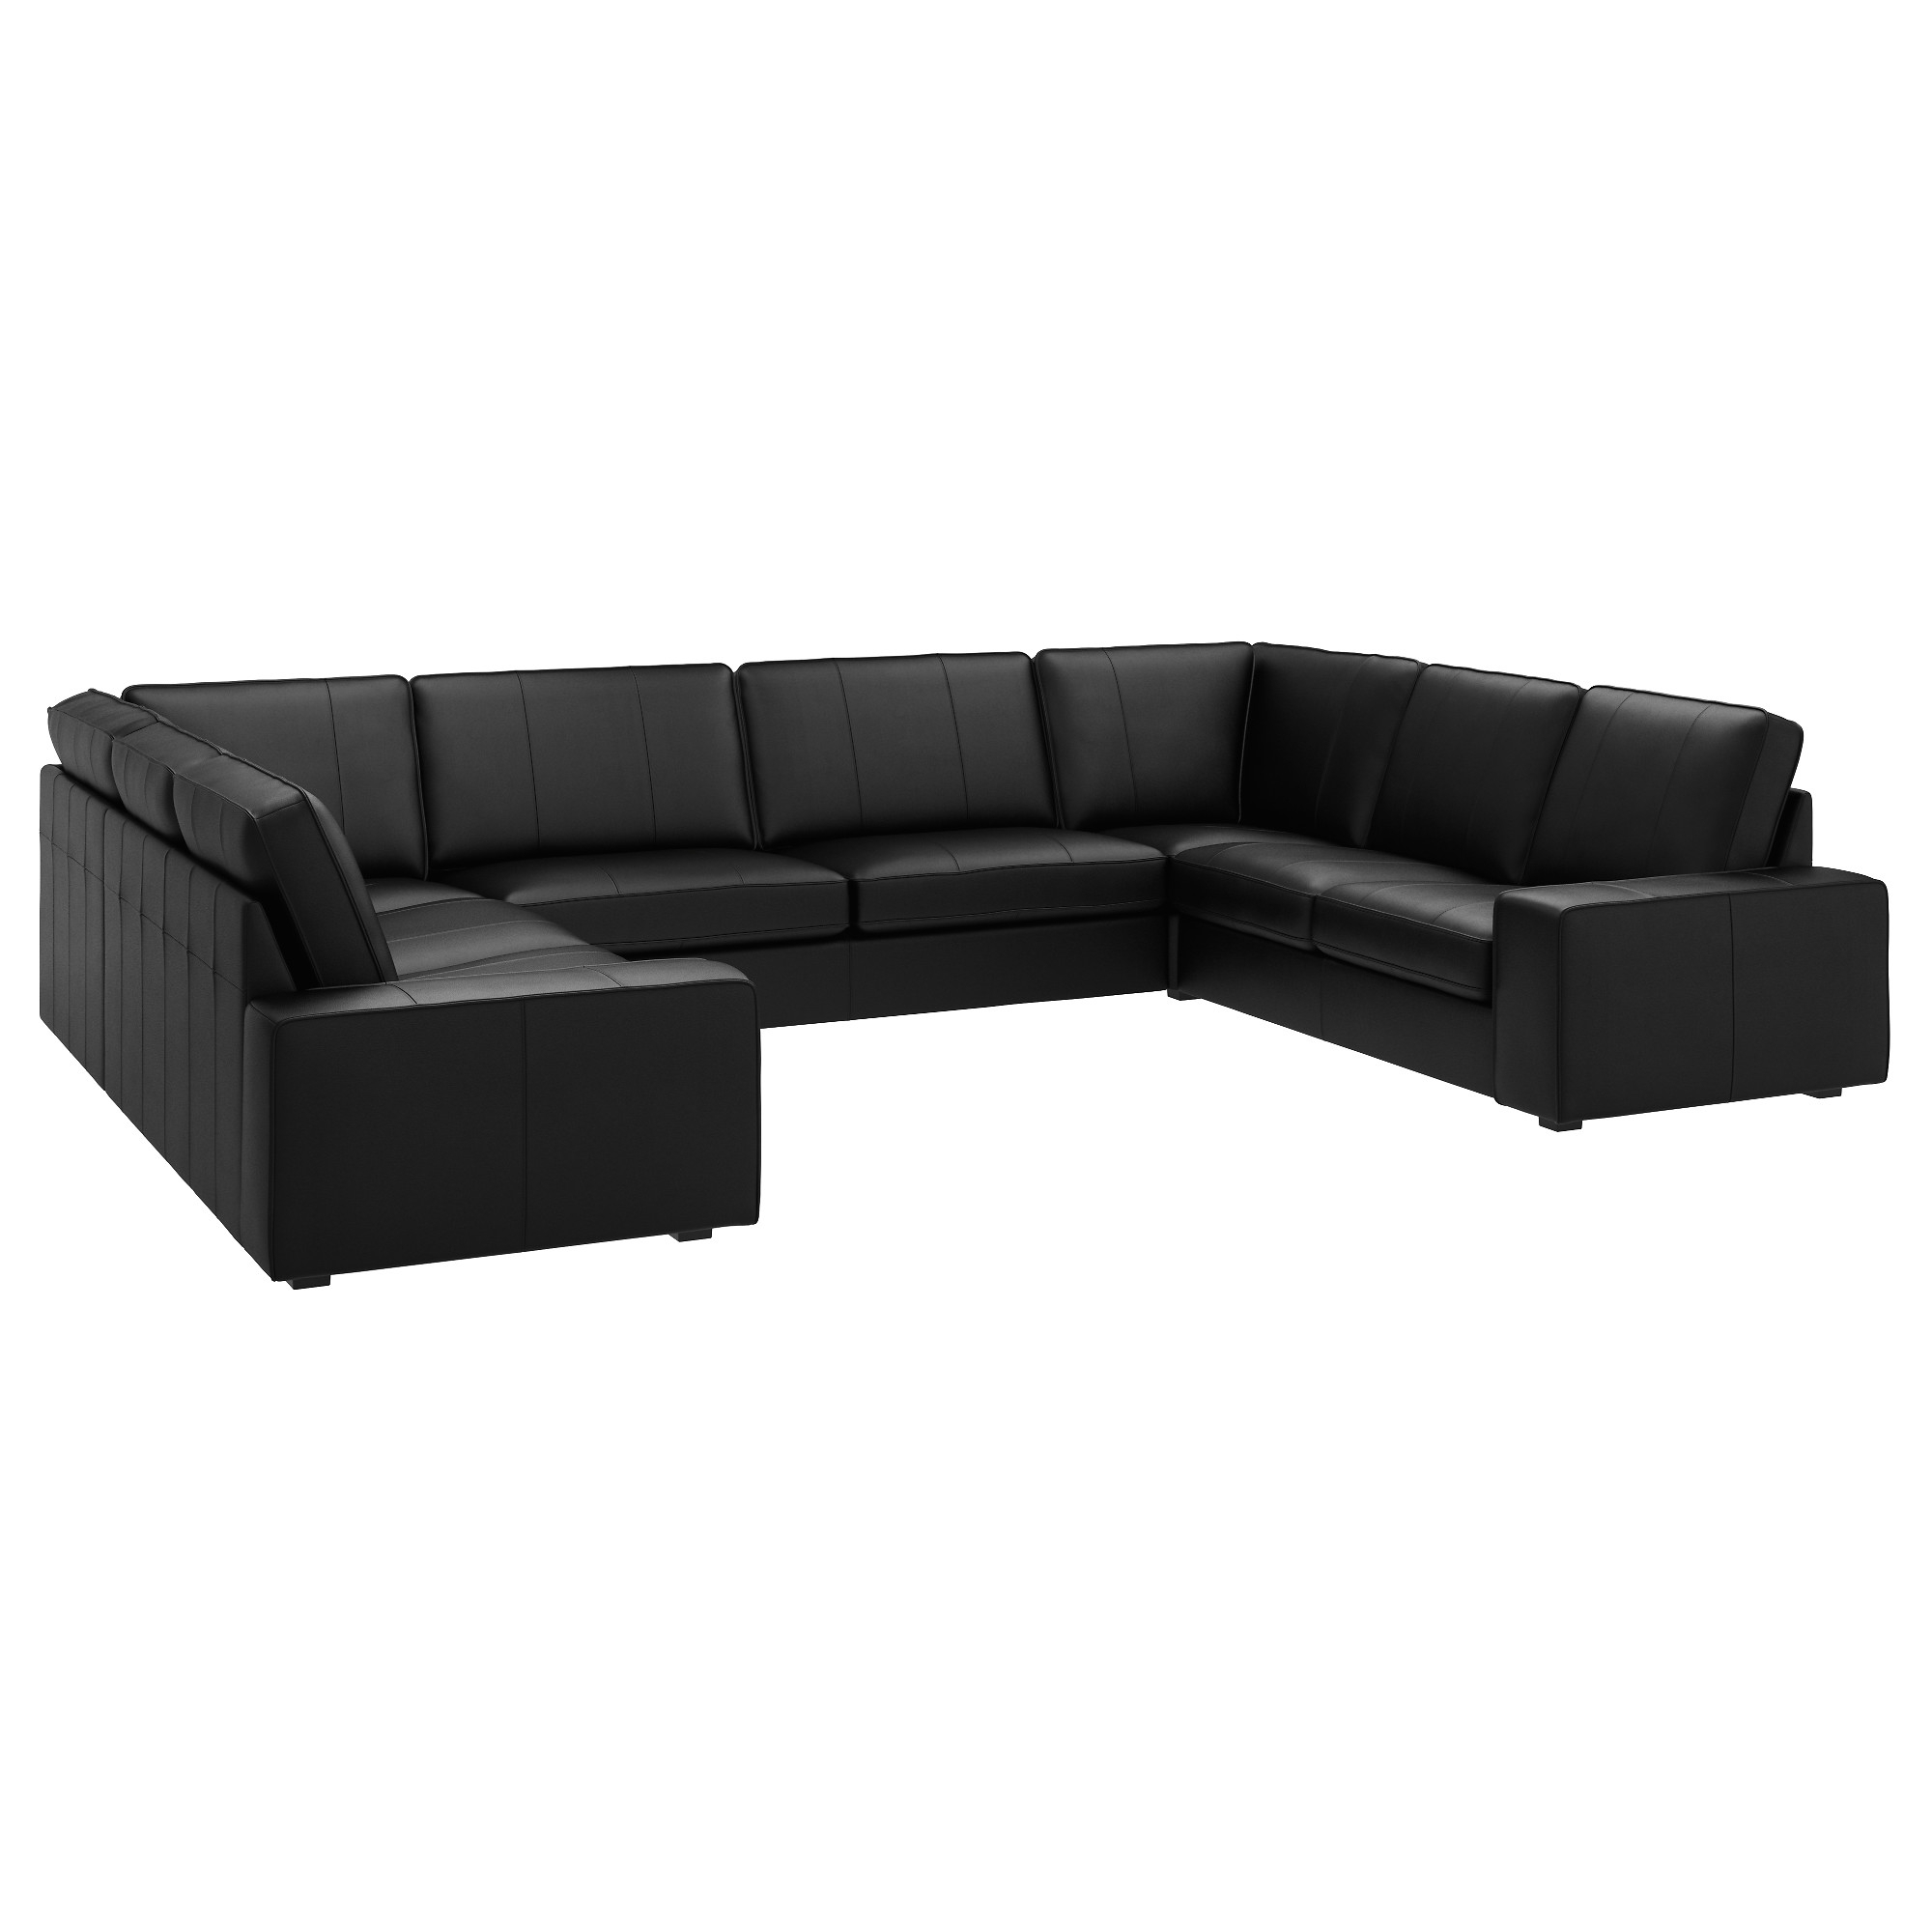 Well Liked 63 Most Endearing Kivik U Shaped Sofa Seat Grann Bomstad Black S Within Quatrine Sectional Sofas (View 15 of 15)